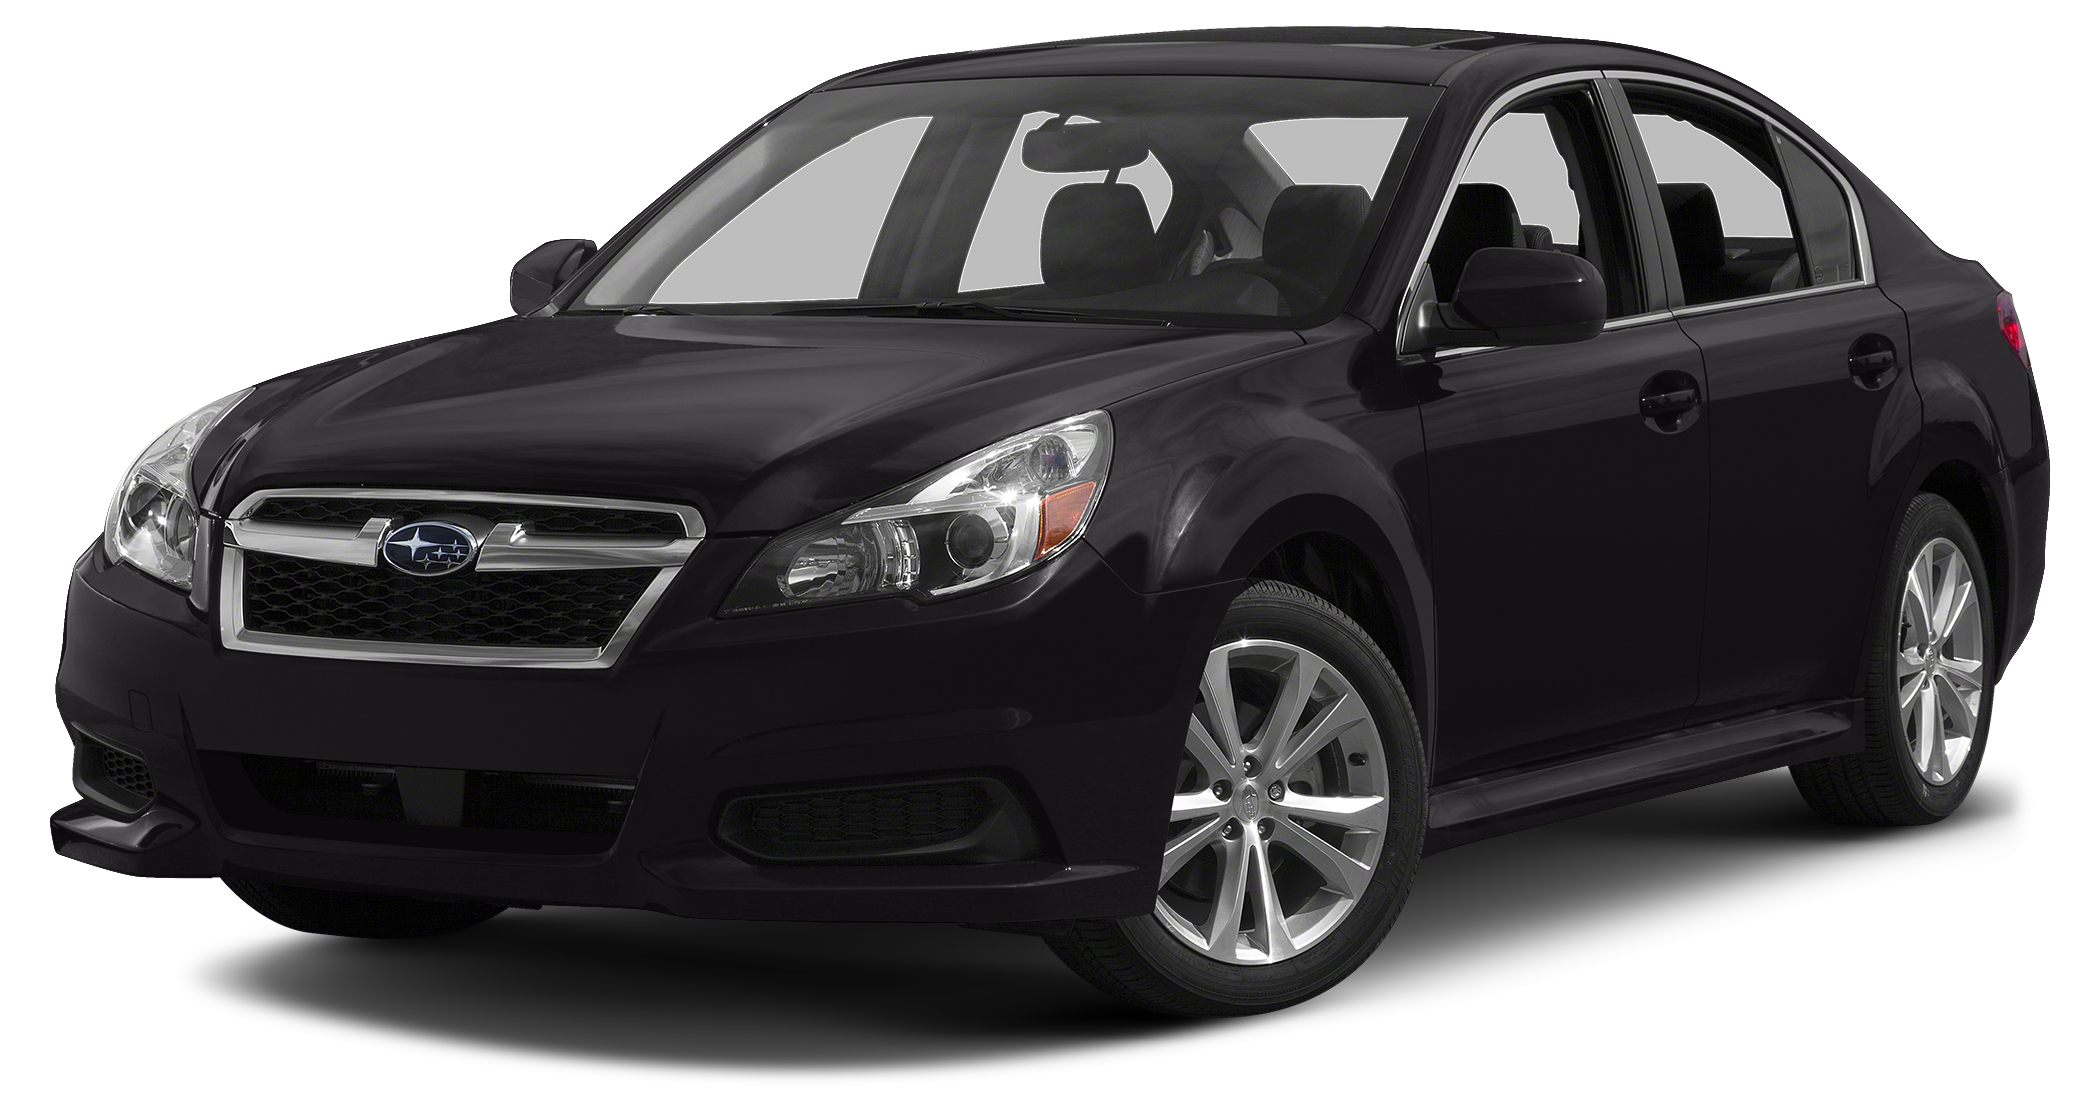 2013 Subaru Legacy 25i  COME SEE THE DIFFERENCE AT TAJ AUTO MALL WE SELL OUR VEHICLES AT